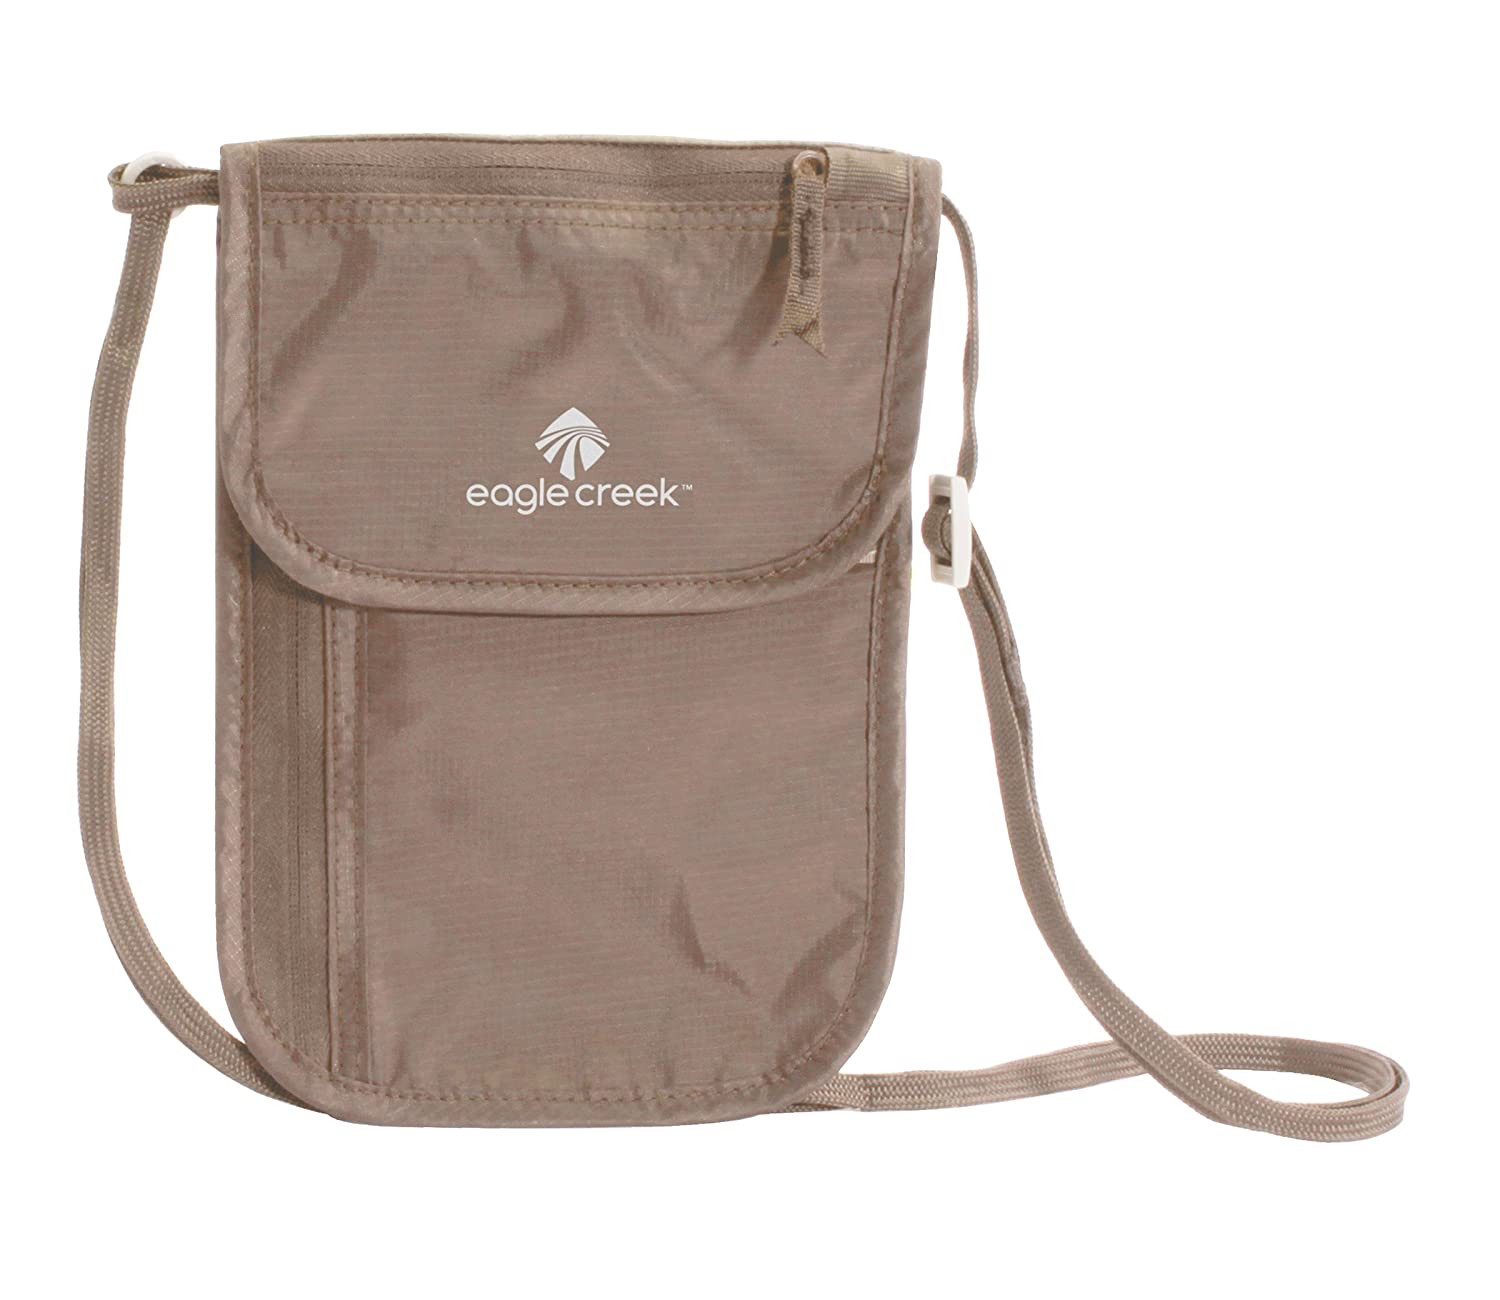 Eagle Creek Travel Gear Undercover Neck Wallet Dlx (Khaki) EC-41128091